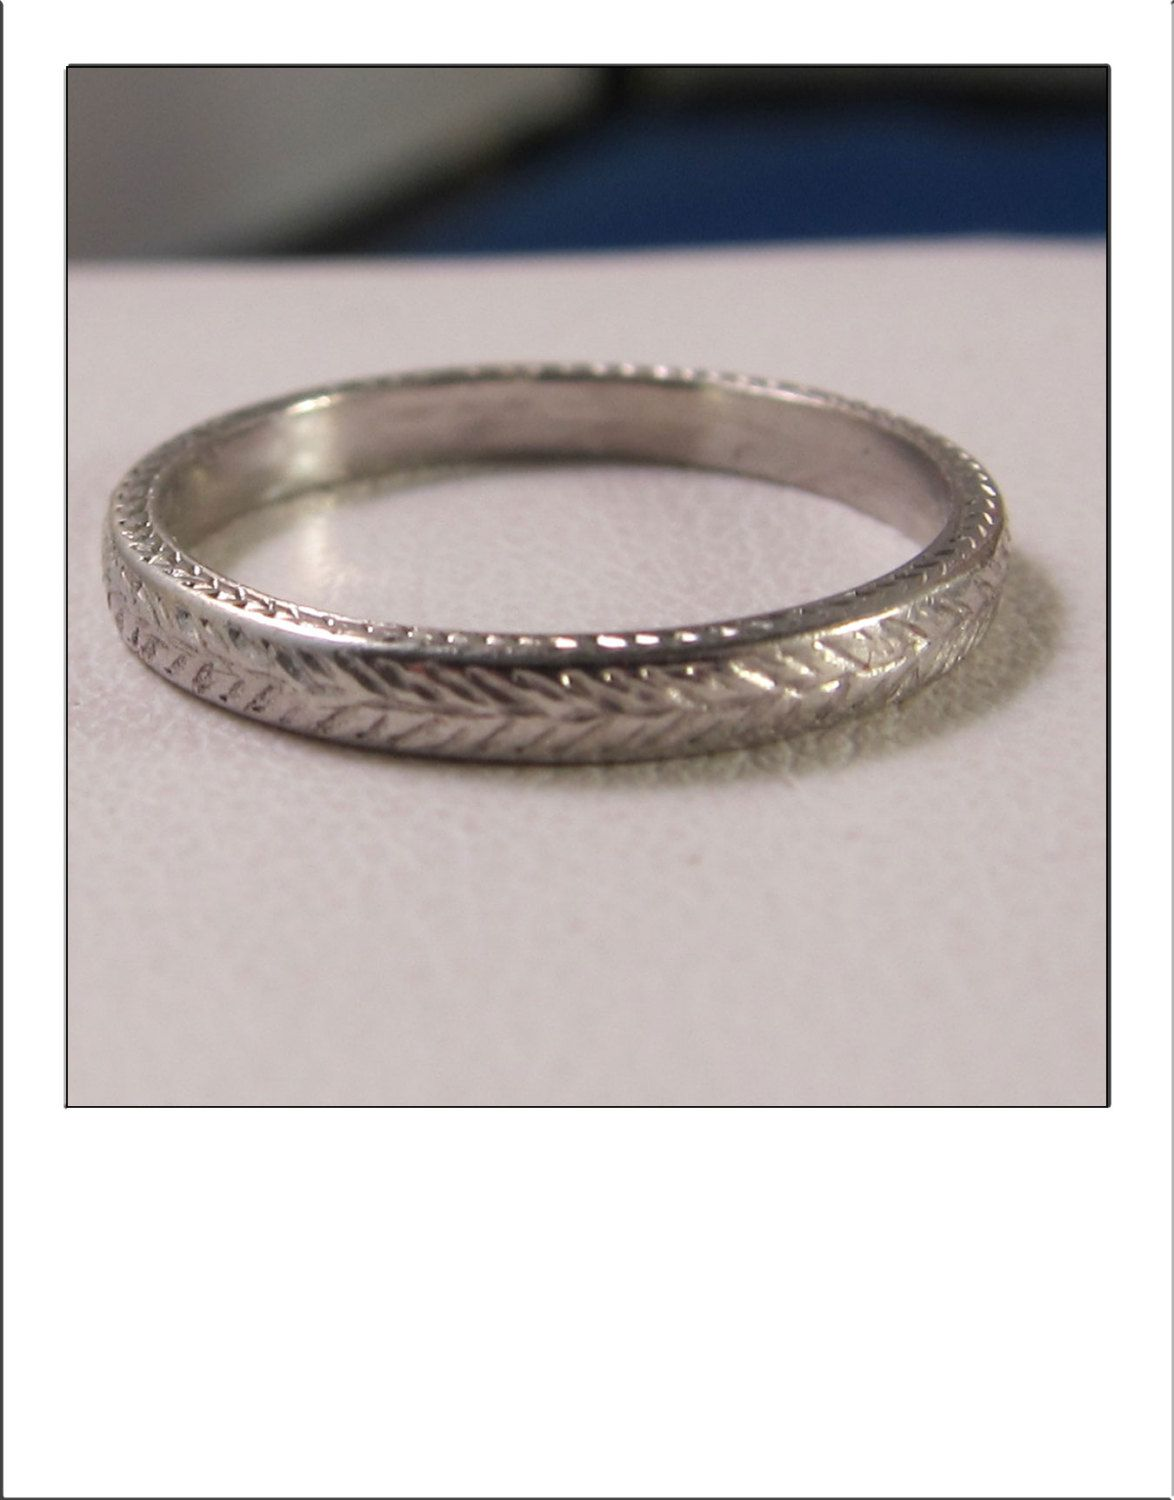 Perfection Antique Platinum Art Deco Finely Feather Engraved Wedding Band